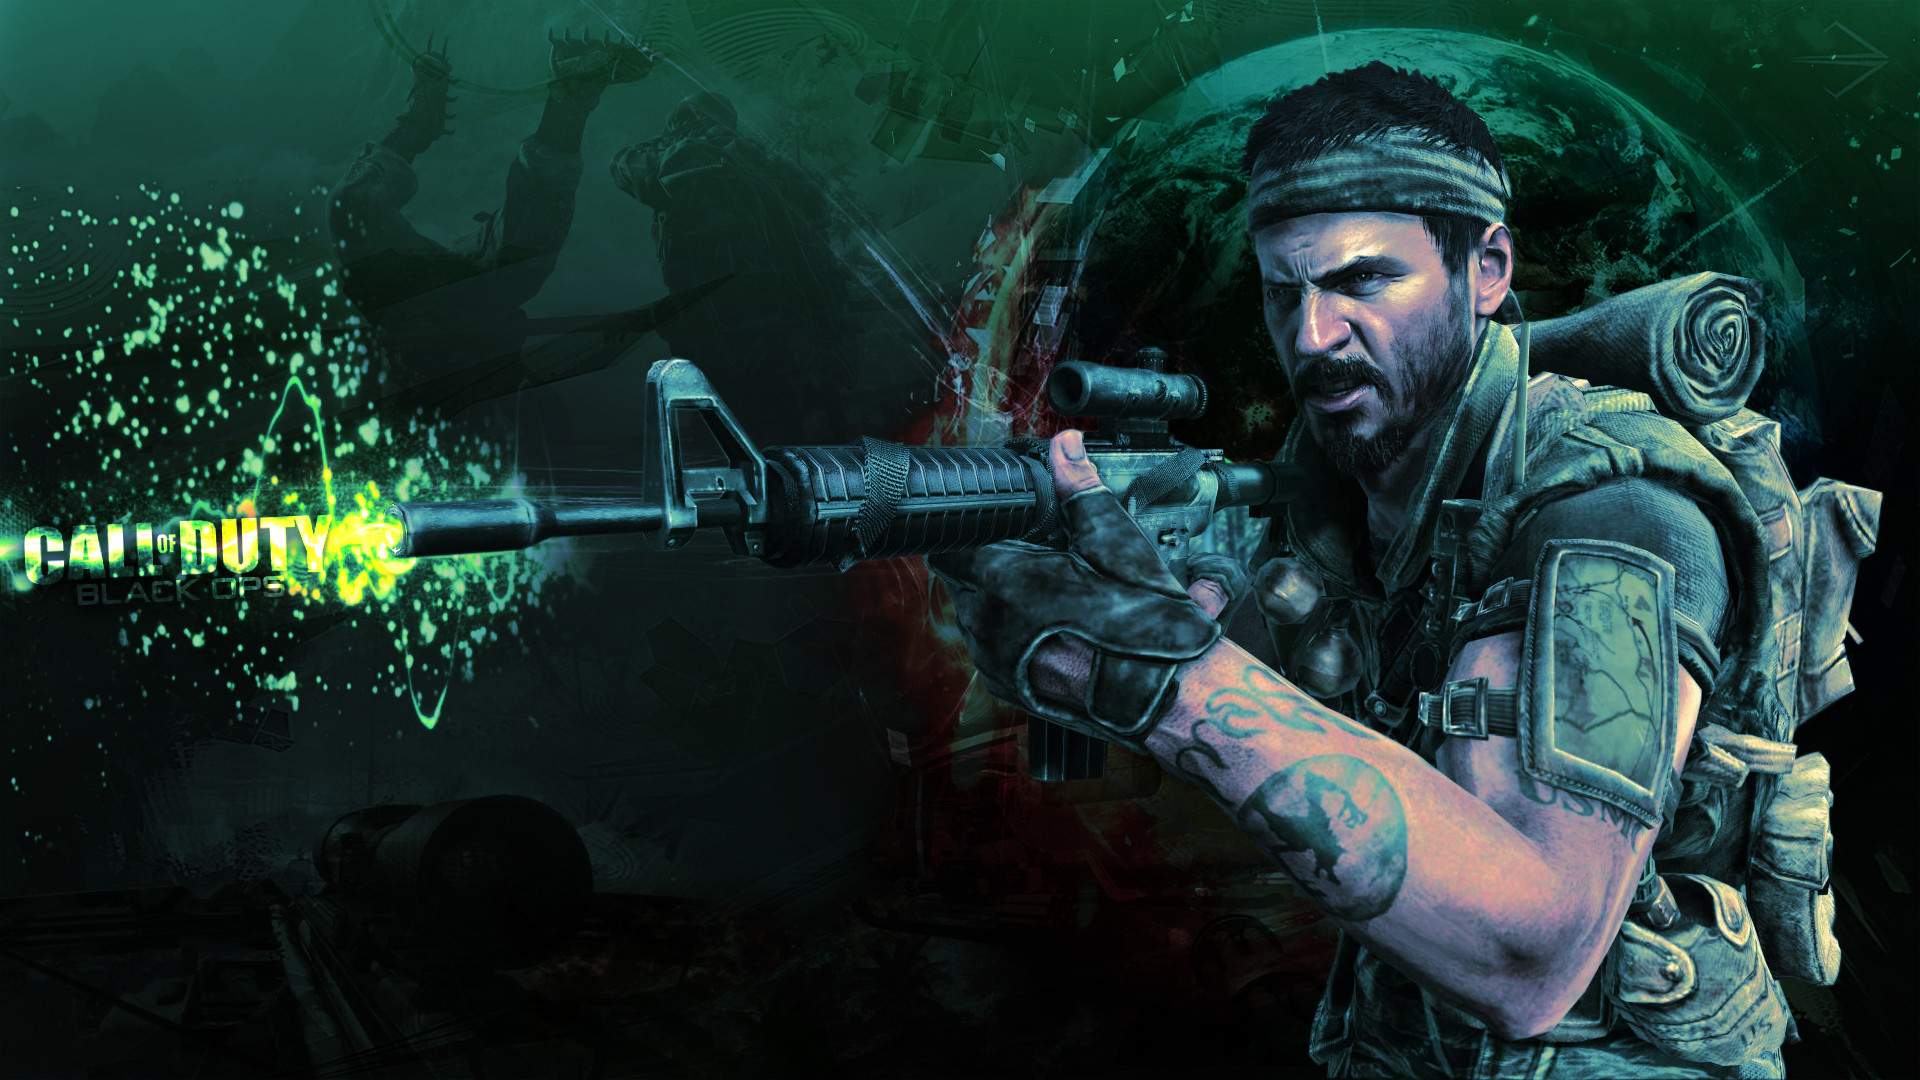 Black Ops Wallpapers Group 1920×1200 Call Of Duty Black Ops 1 Wallpapers  (31 Wallpapers) | Adorable Wallpapers | Wallpapers | Pinterest | Black ops,  …